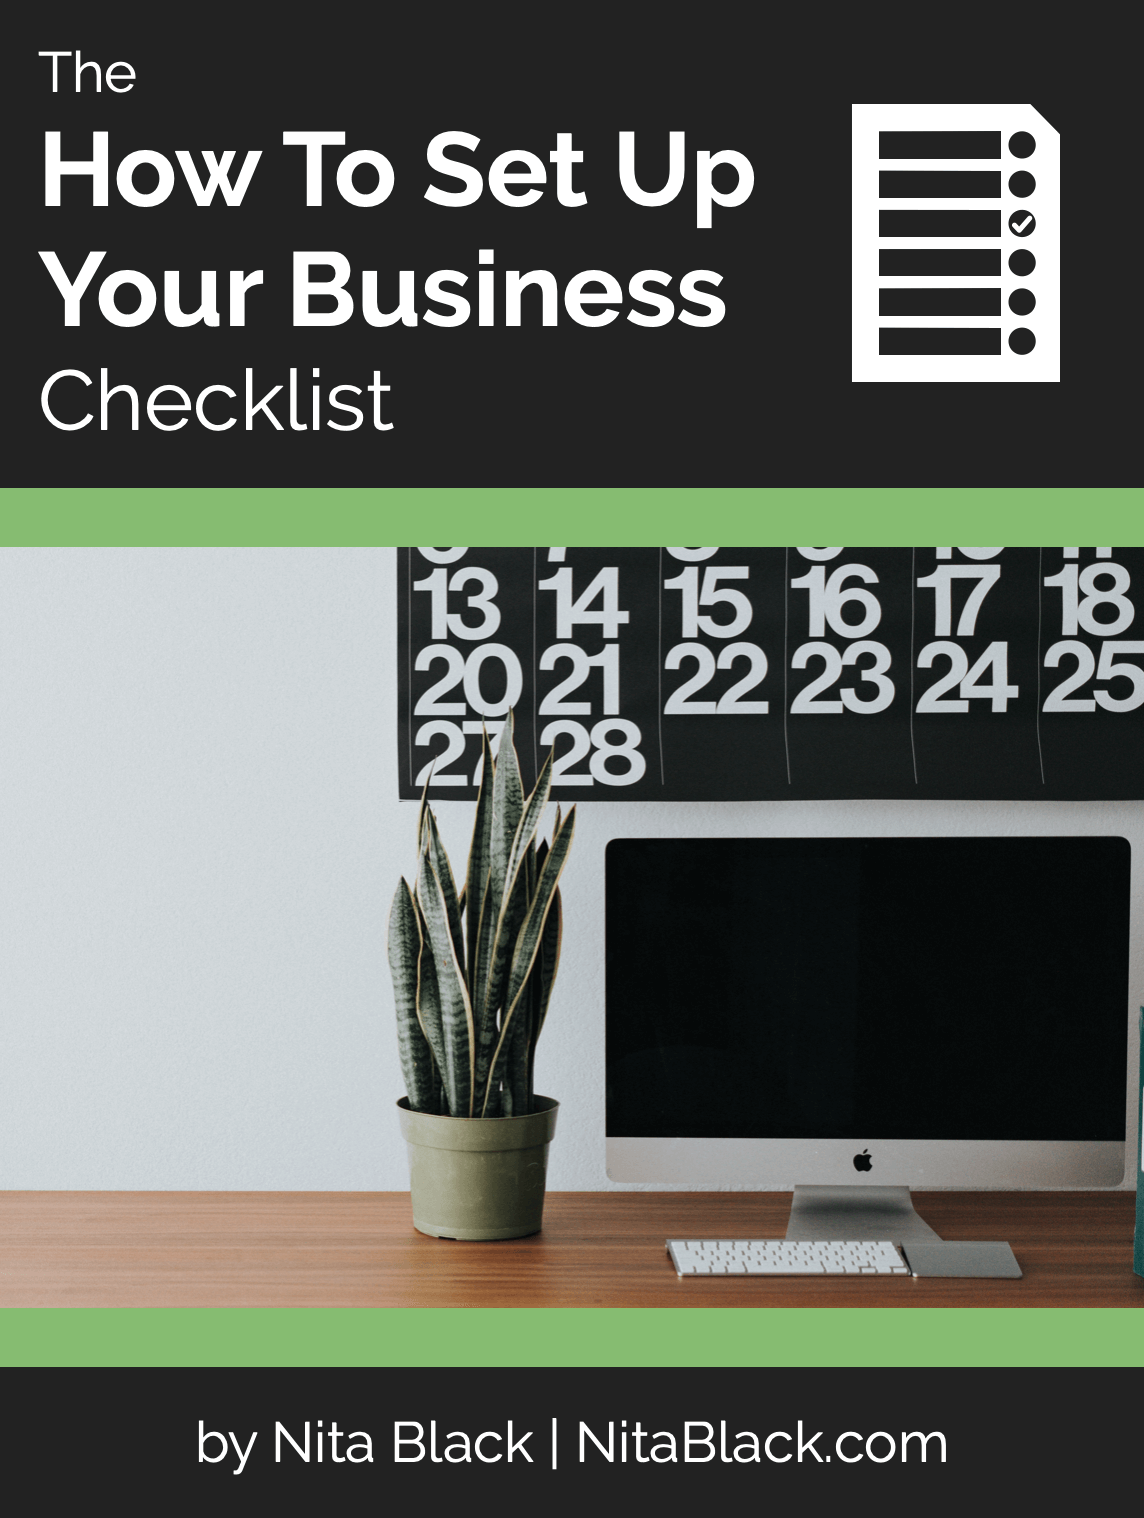 How to Set Up Your Business Checklist Cover